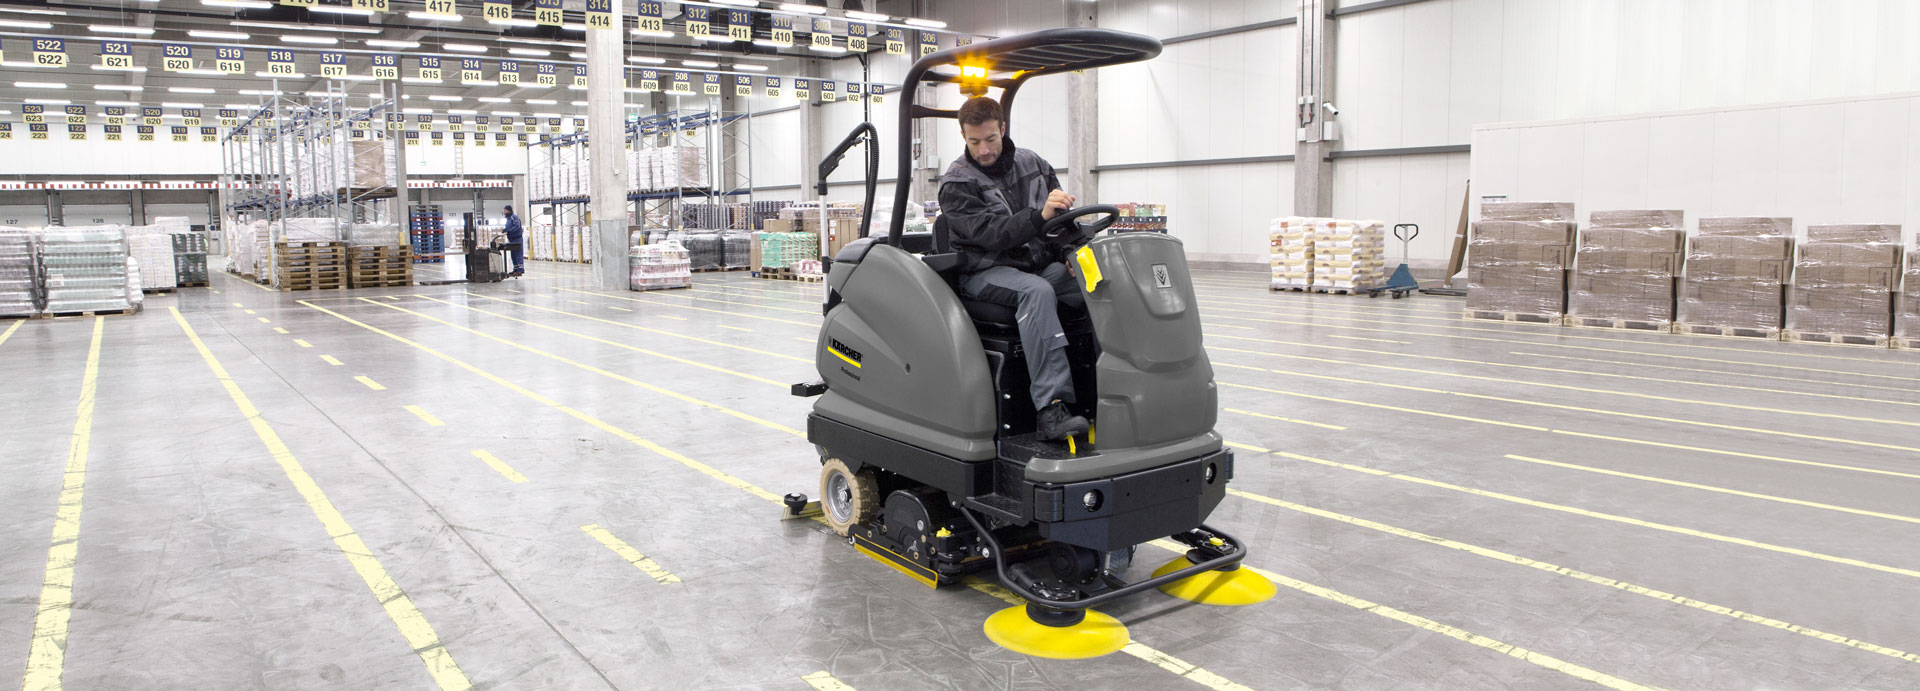 Kärcher B250 Scrubber Dryer